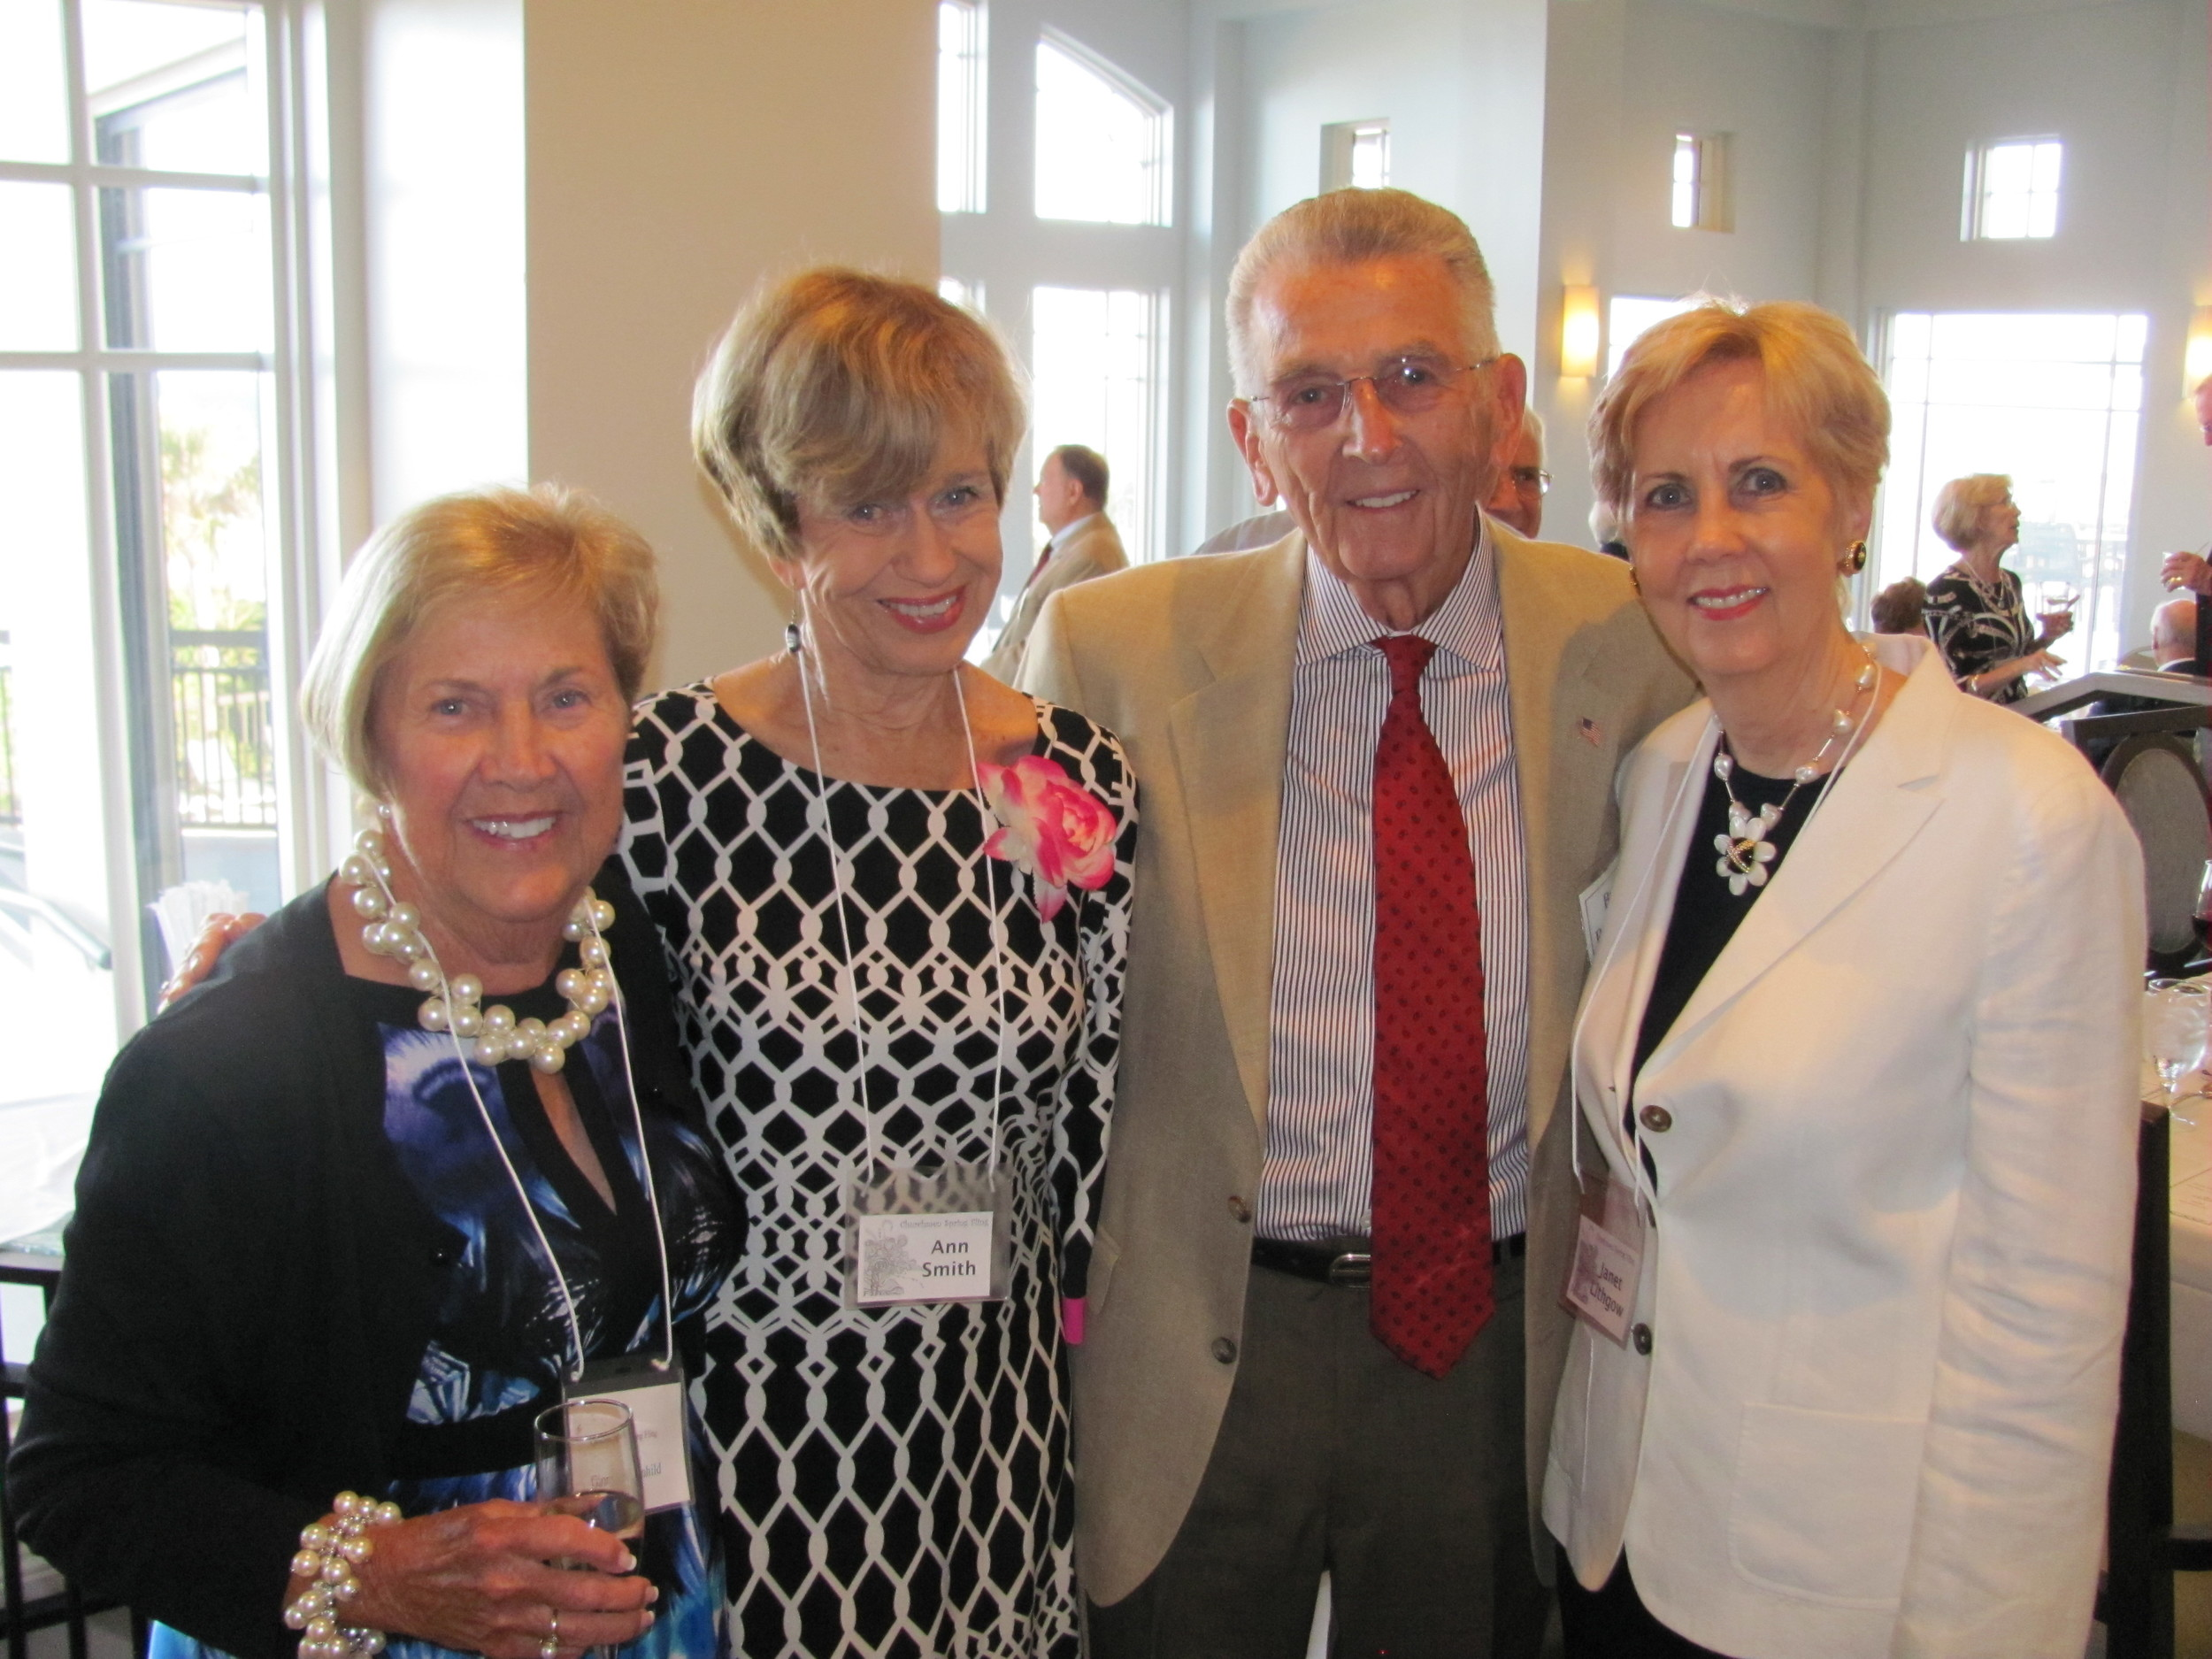 Ginny Roemhild, Ann Smith, Bud Roemhild and Janet Lithgow